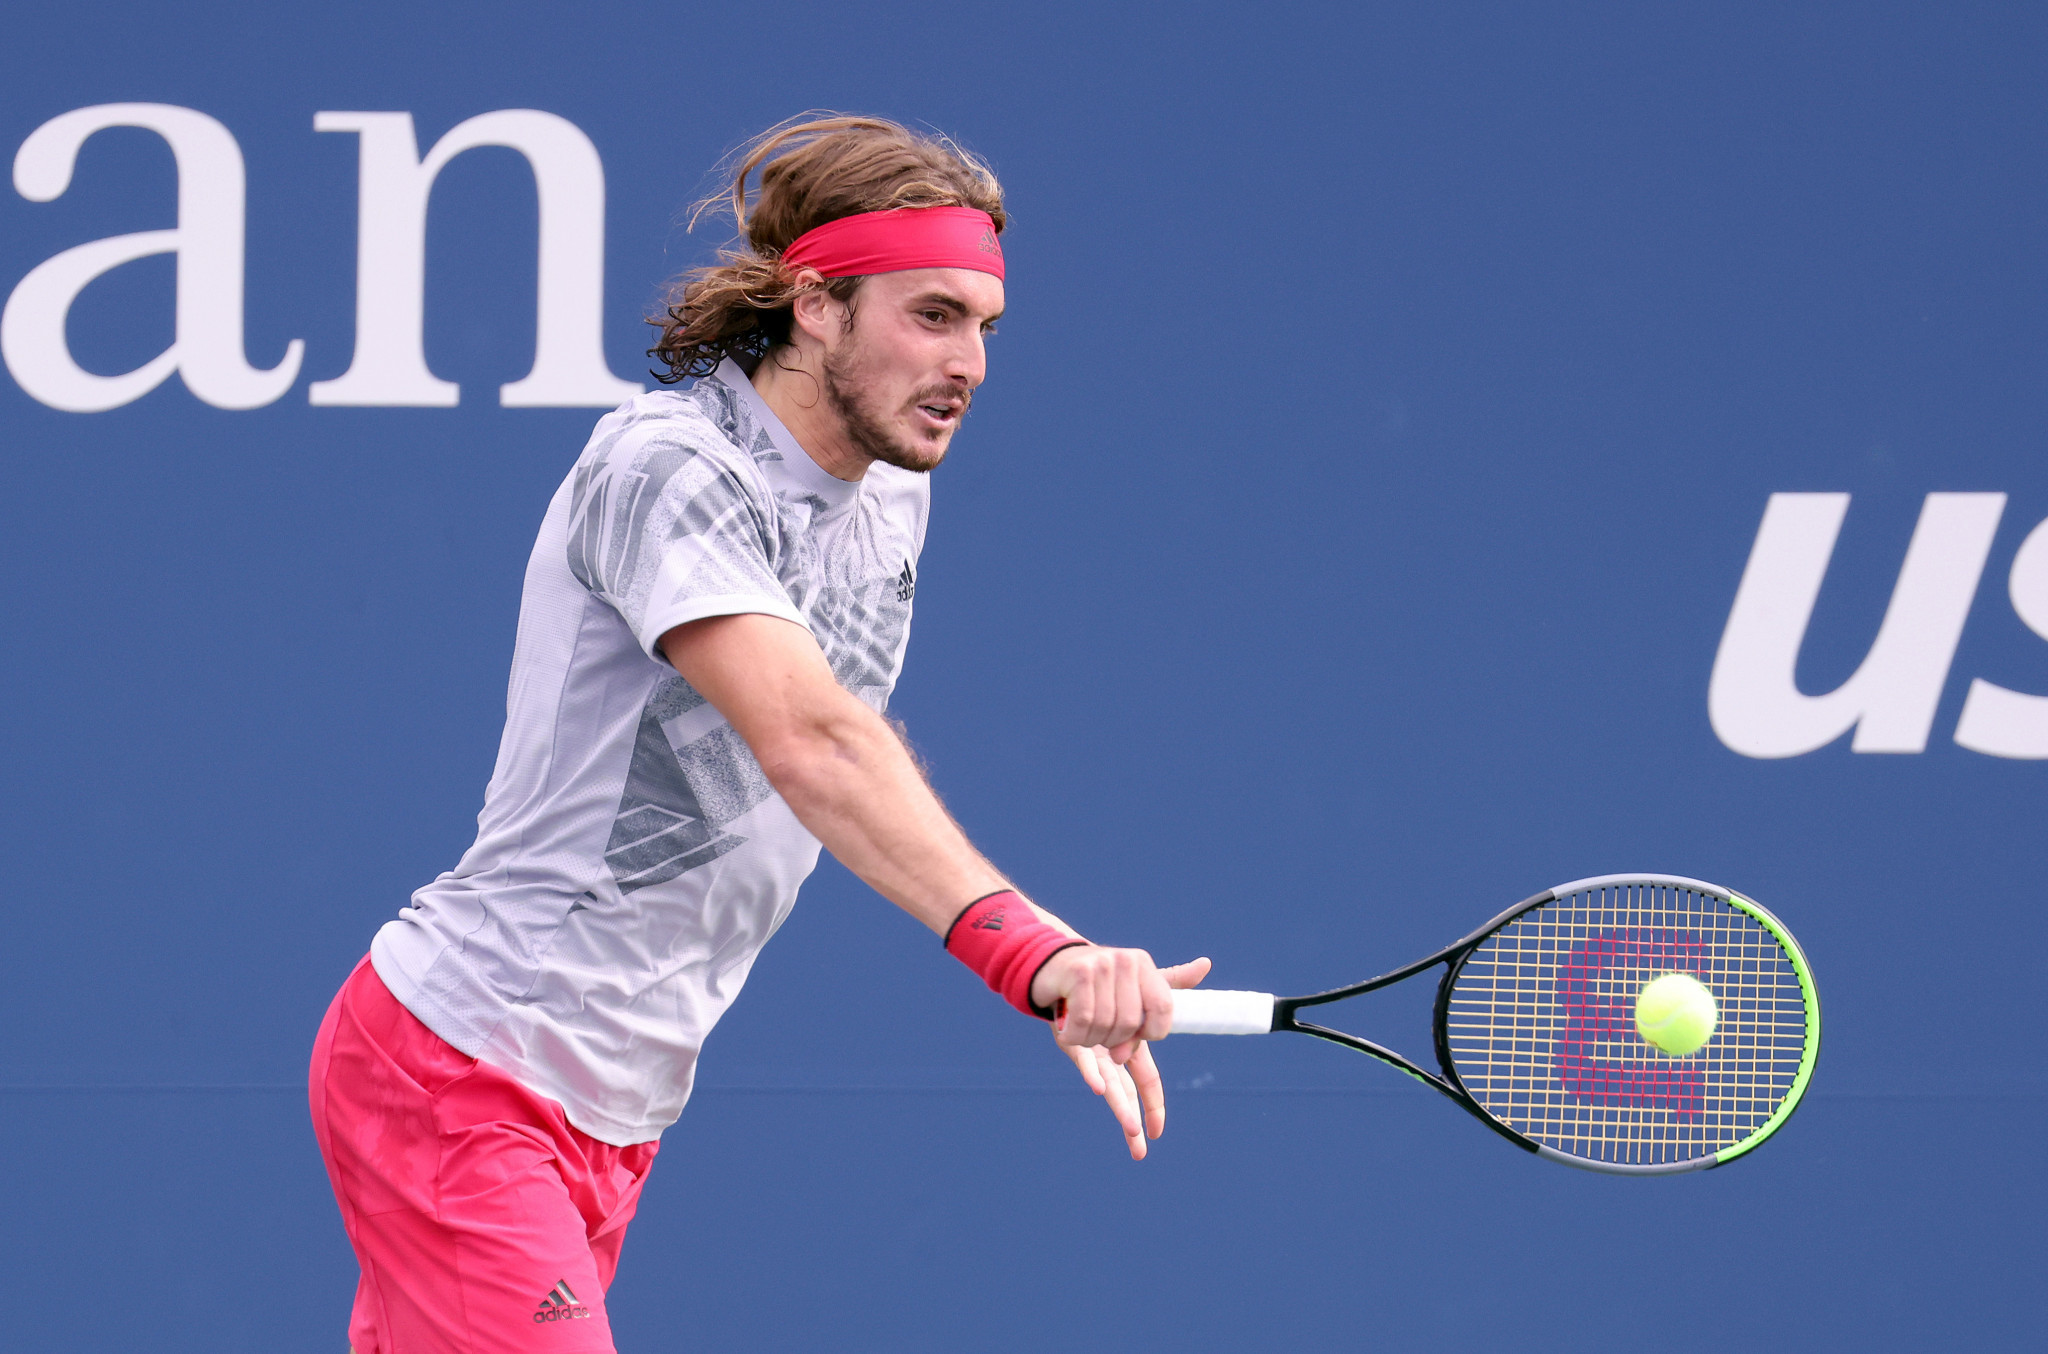 Fourth seed Stefanos Tsitsipas of Greece lost just four games as he reached the second round of the US Open ©Getty Images